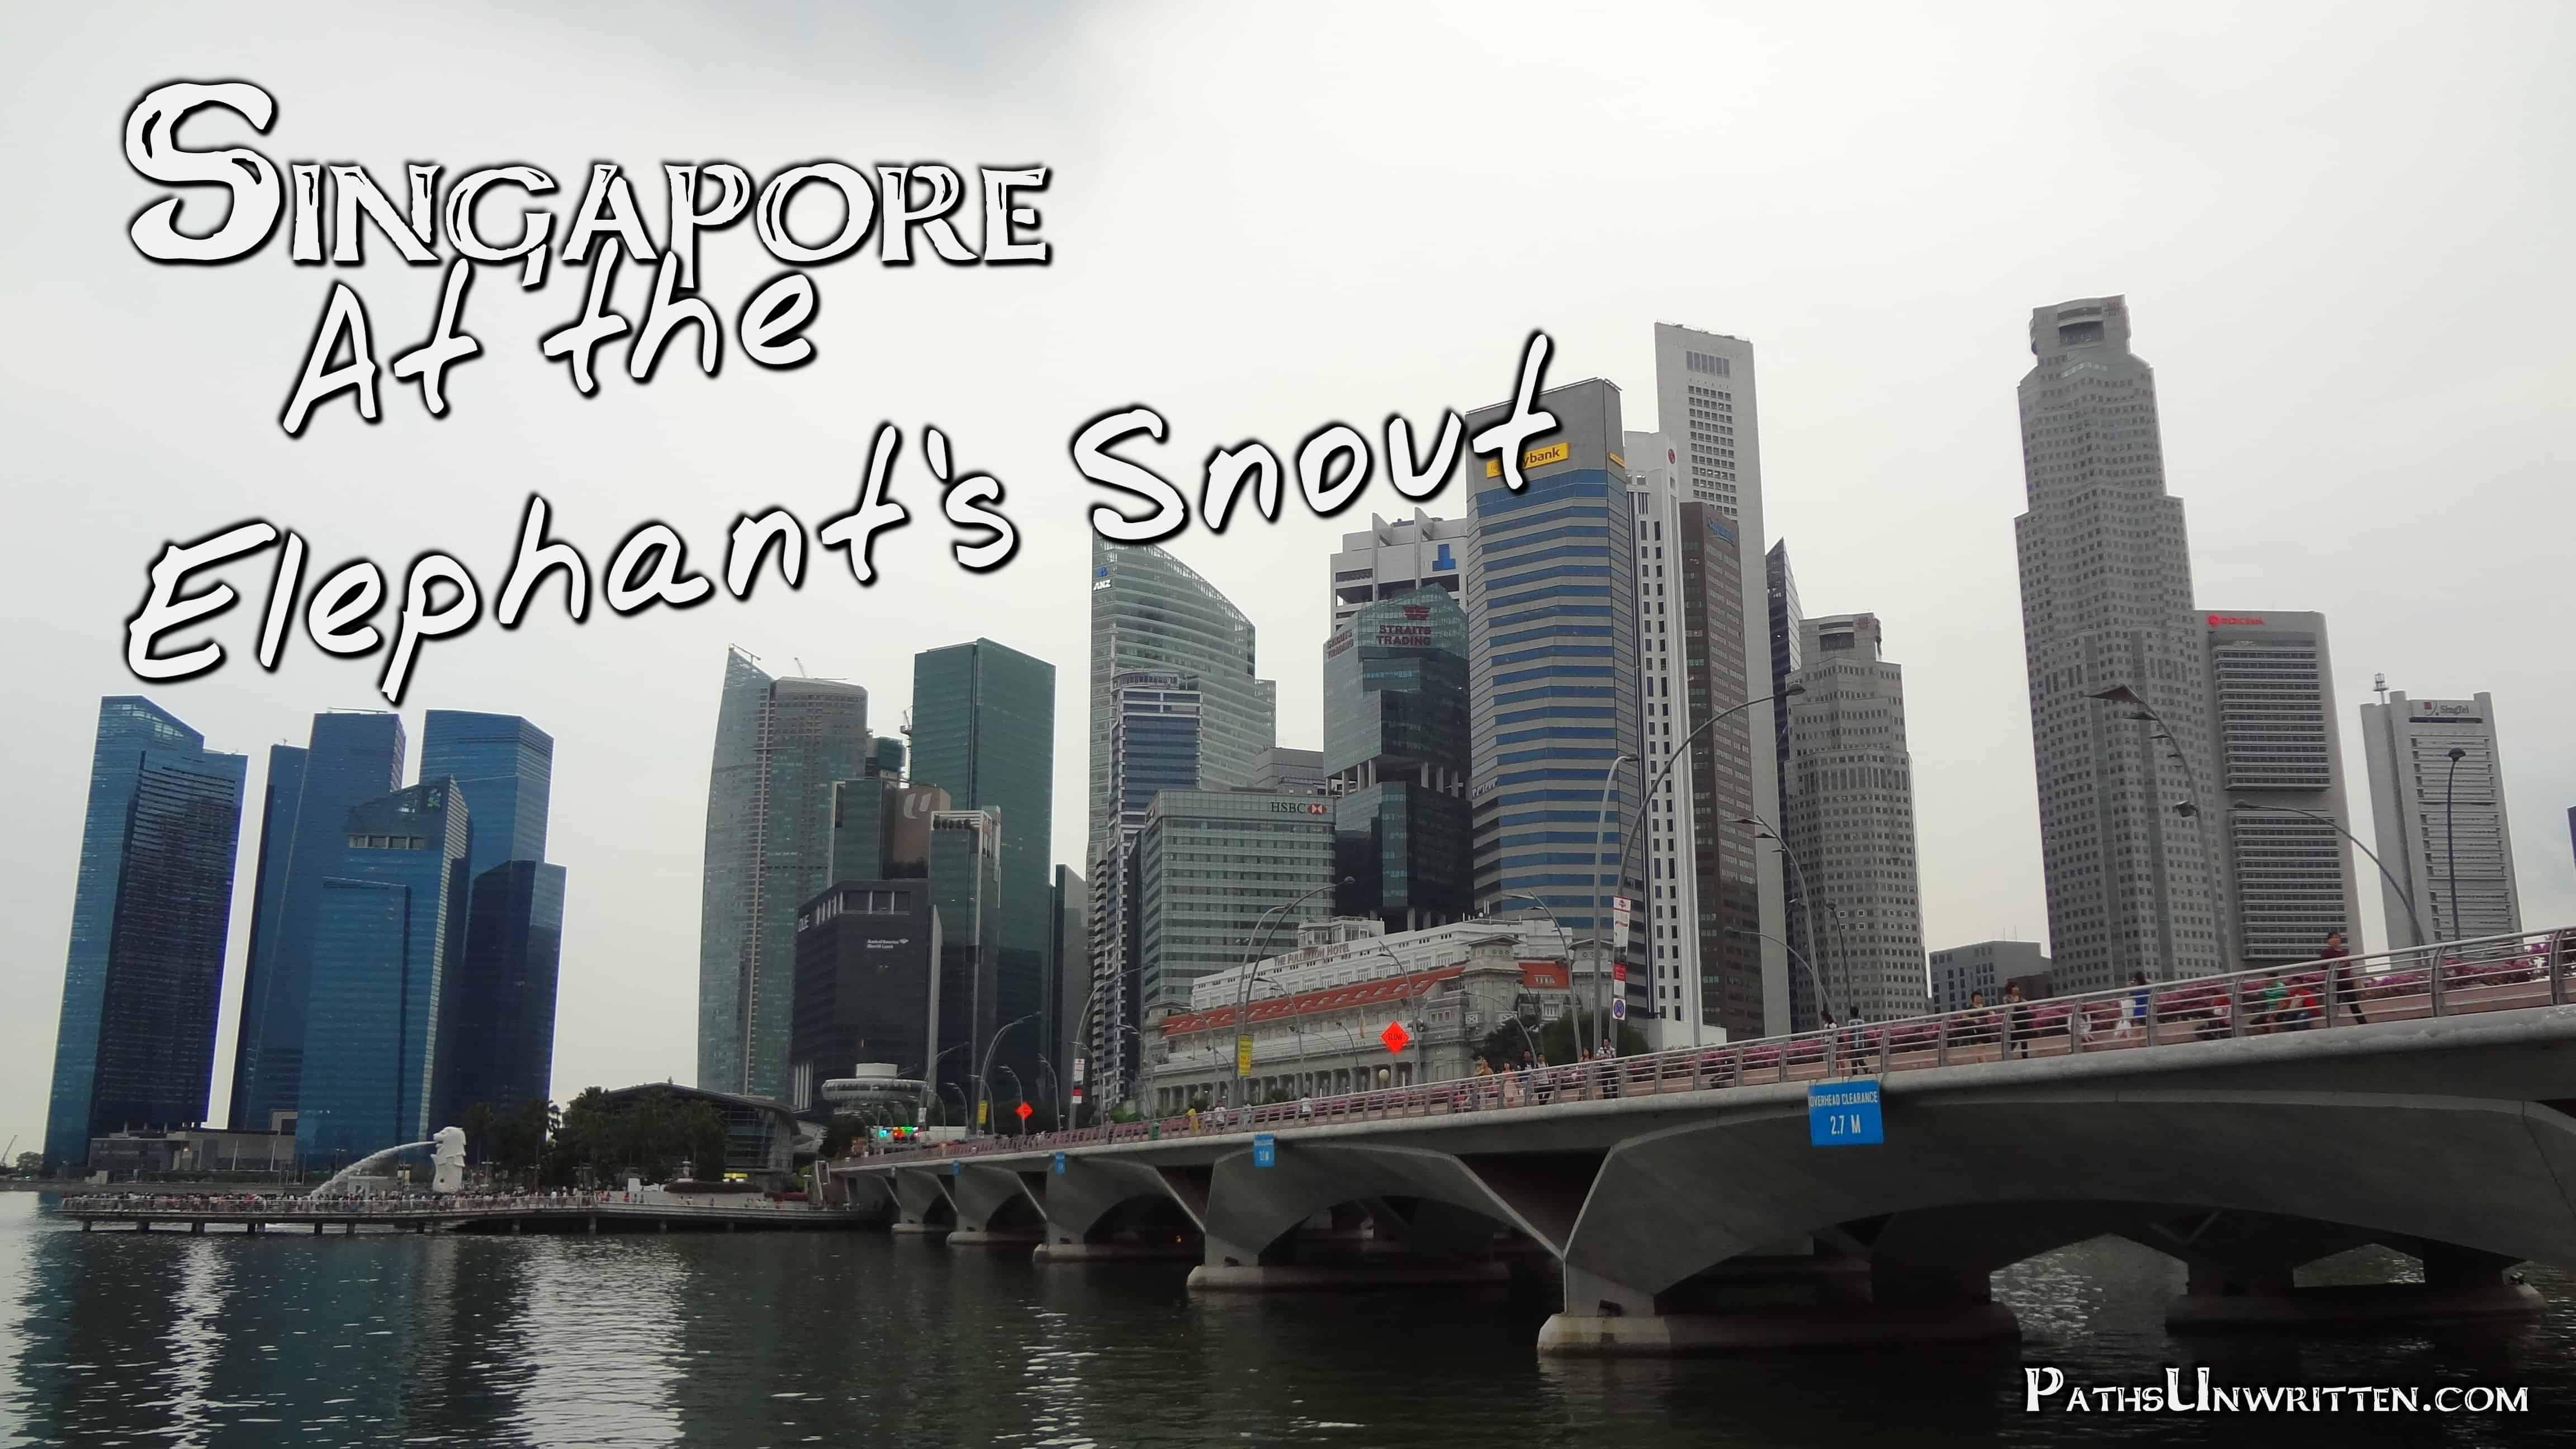 Singapore:  At the Elephant's Snout